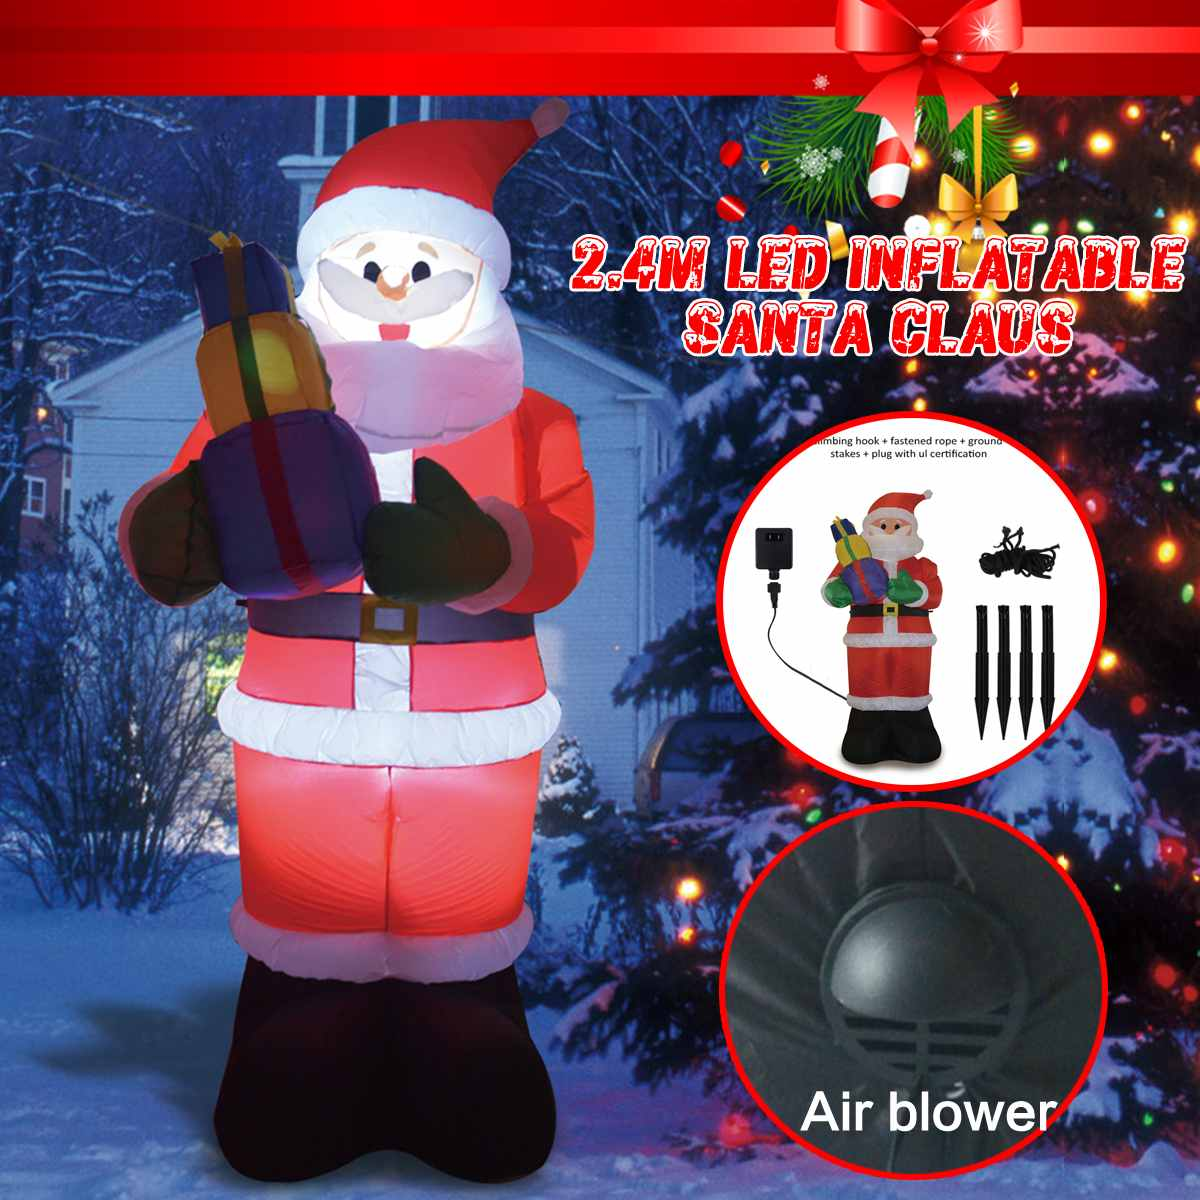 2.4m EU/US PLUG LED Santa Claus Inflatable Christmas LED Santa Claus Toy for Christmas Garden Outdoor Decoration2.4m EU/US PLUG LED Santa Claus Inflatable Christmas LED Santa Claus Toy for Christmas Garden Outdoor Decoration